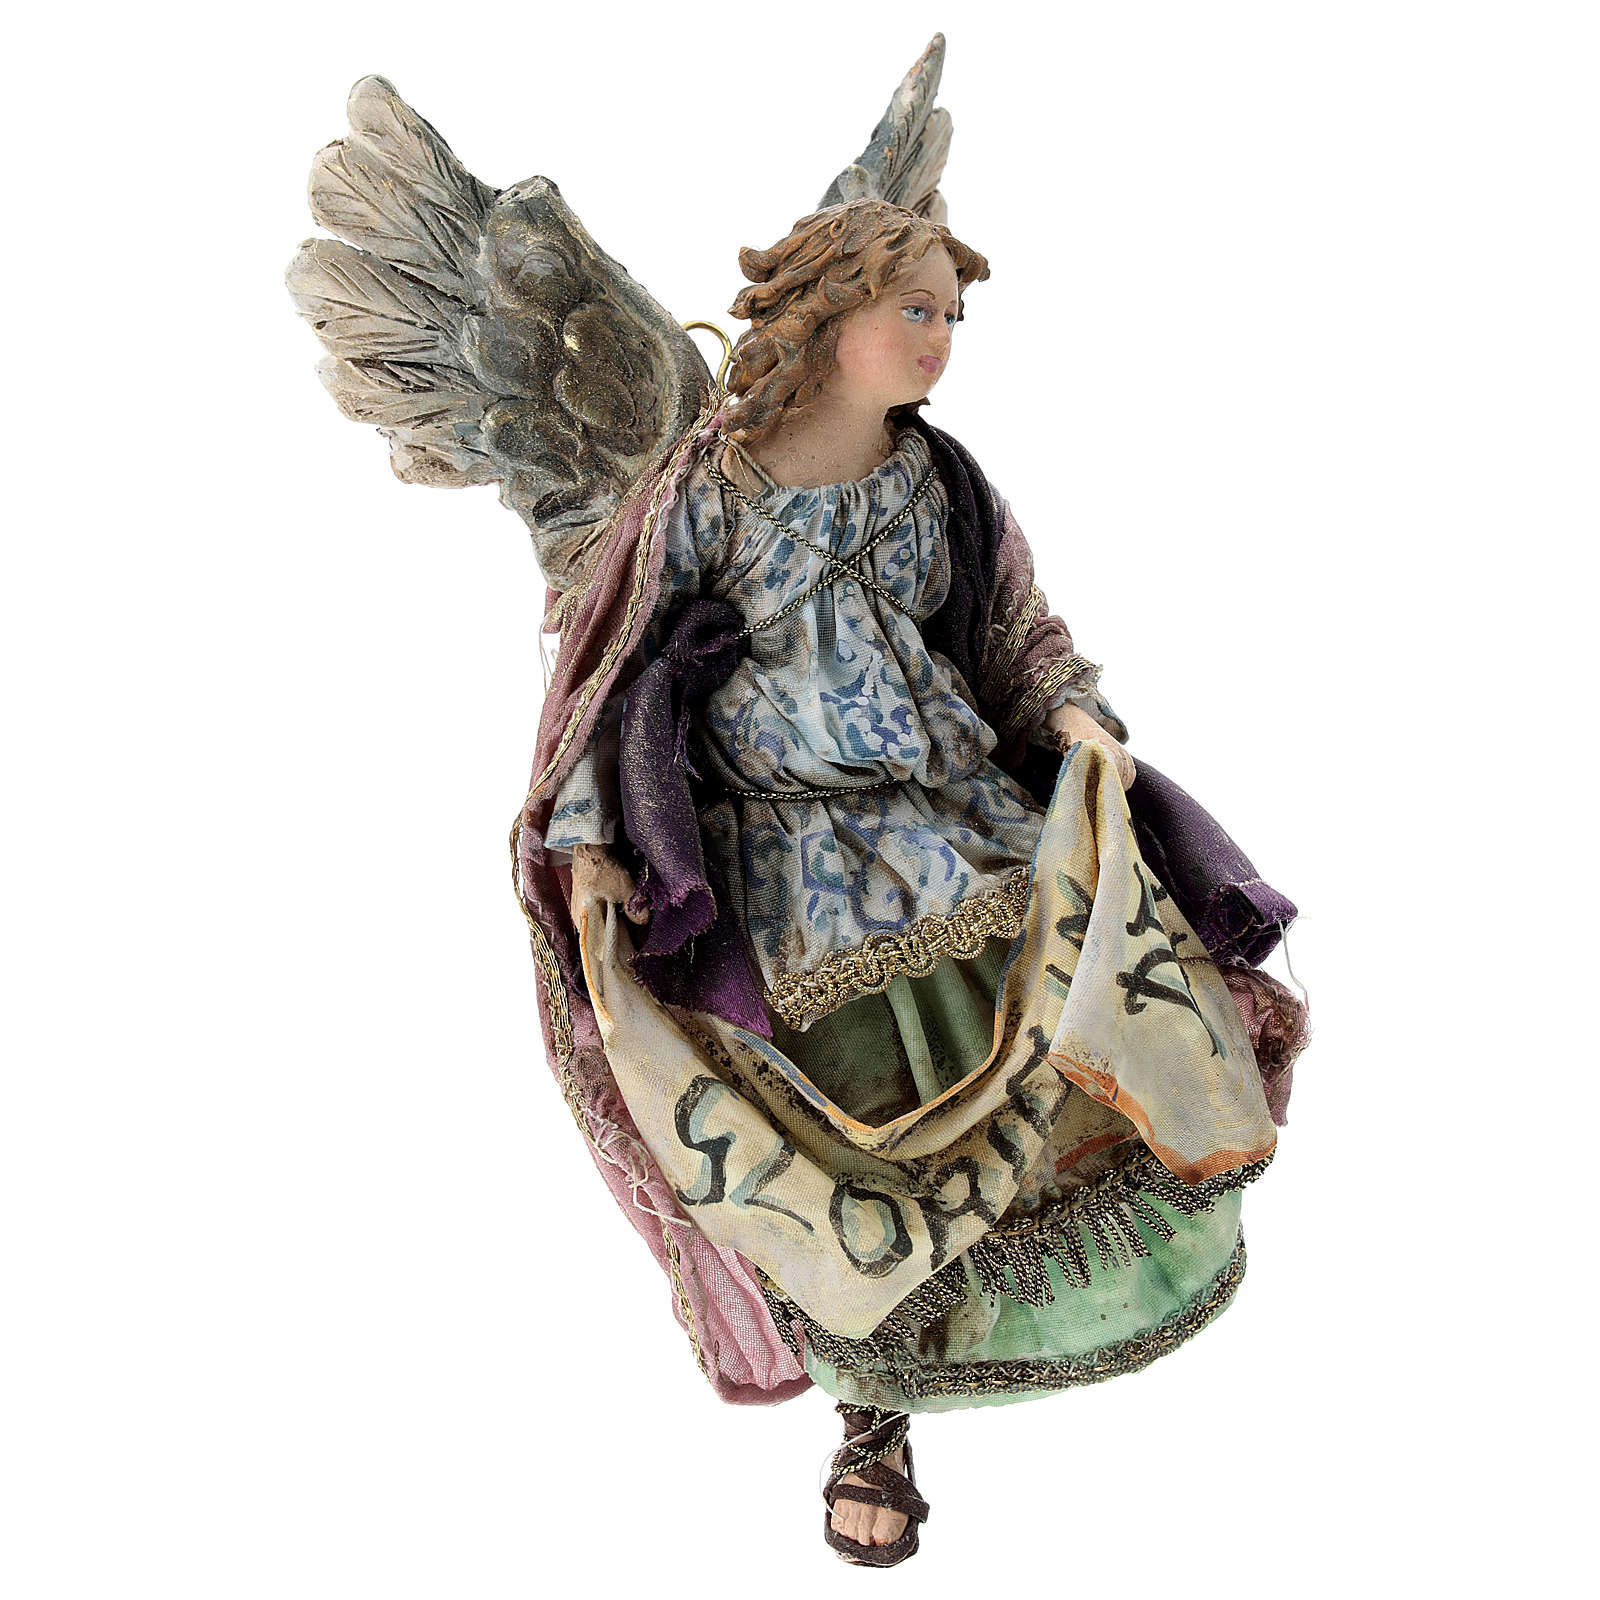 Nativity scene figurine, Angel with Gloria Deo banner by Angela Tripi 13 cm 4